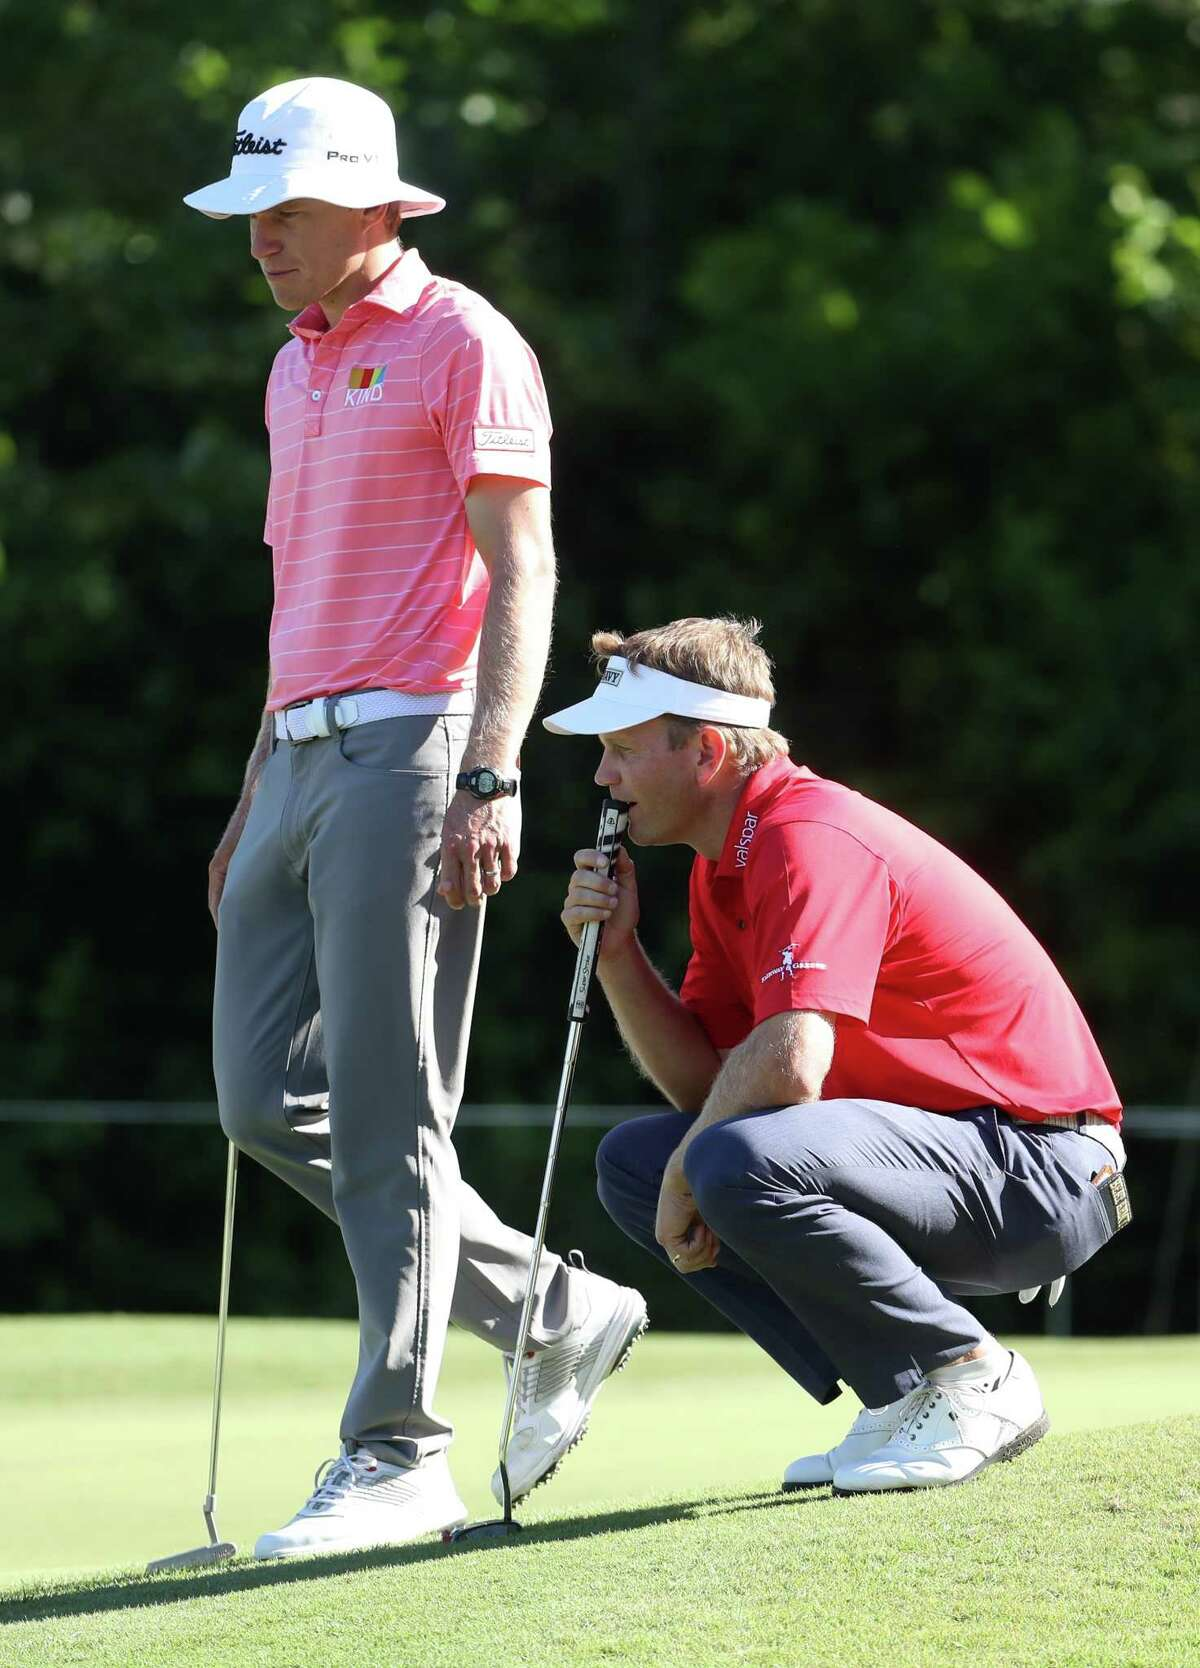 AVONDALE, LOUISIANA - APRIL 26: Billy Hurley III and Peter Malnati of the United States prepare to putt on the first hole during the second round of the Zurich Classic at TPC Louisiana on April 26, 2019 in Avondale, Louisiana. (Photo by Chris Graythen/Getty Images)